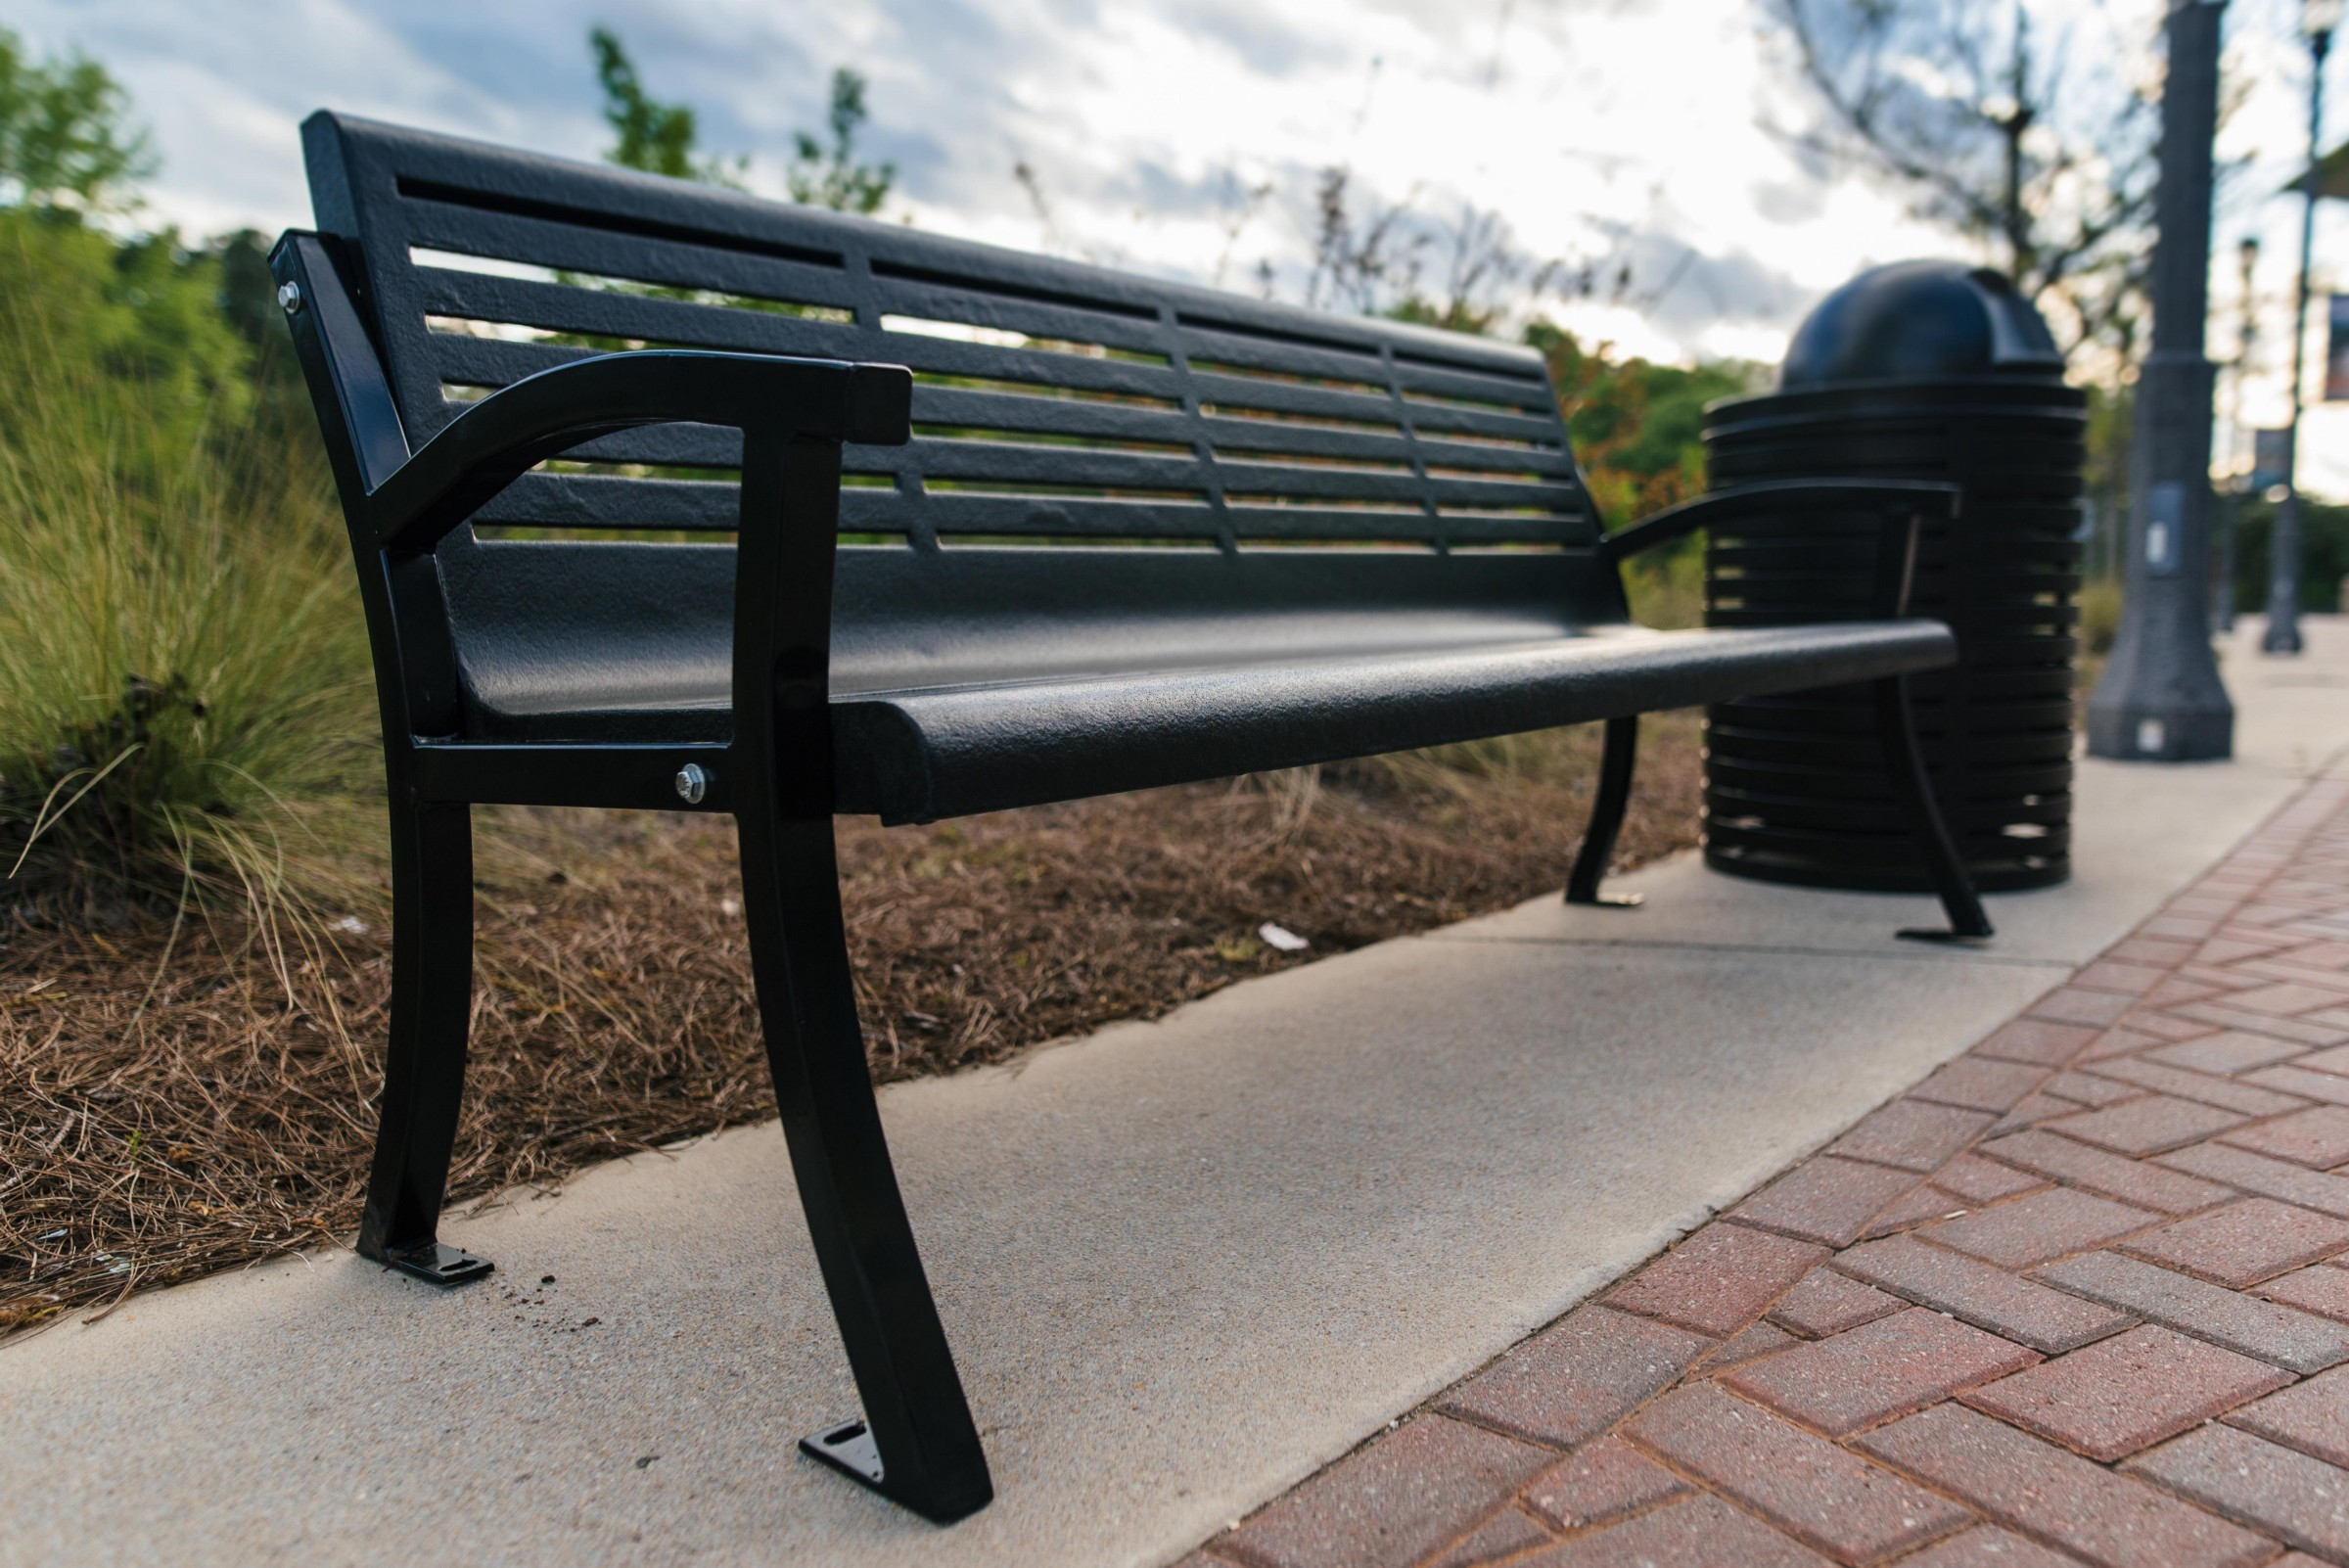 What Commercial Outdoor Furniture Lasts Longest? & What Commercial Outdoor Furniture Lasts Longest ...